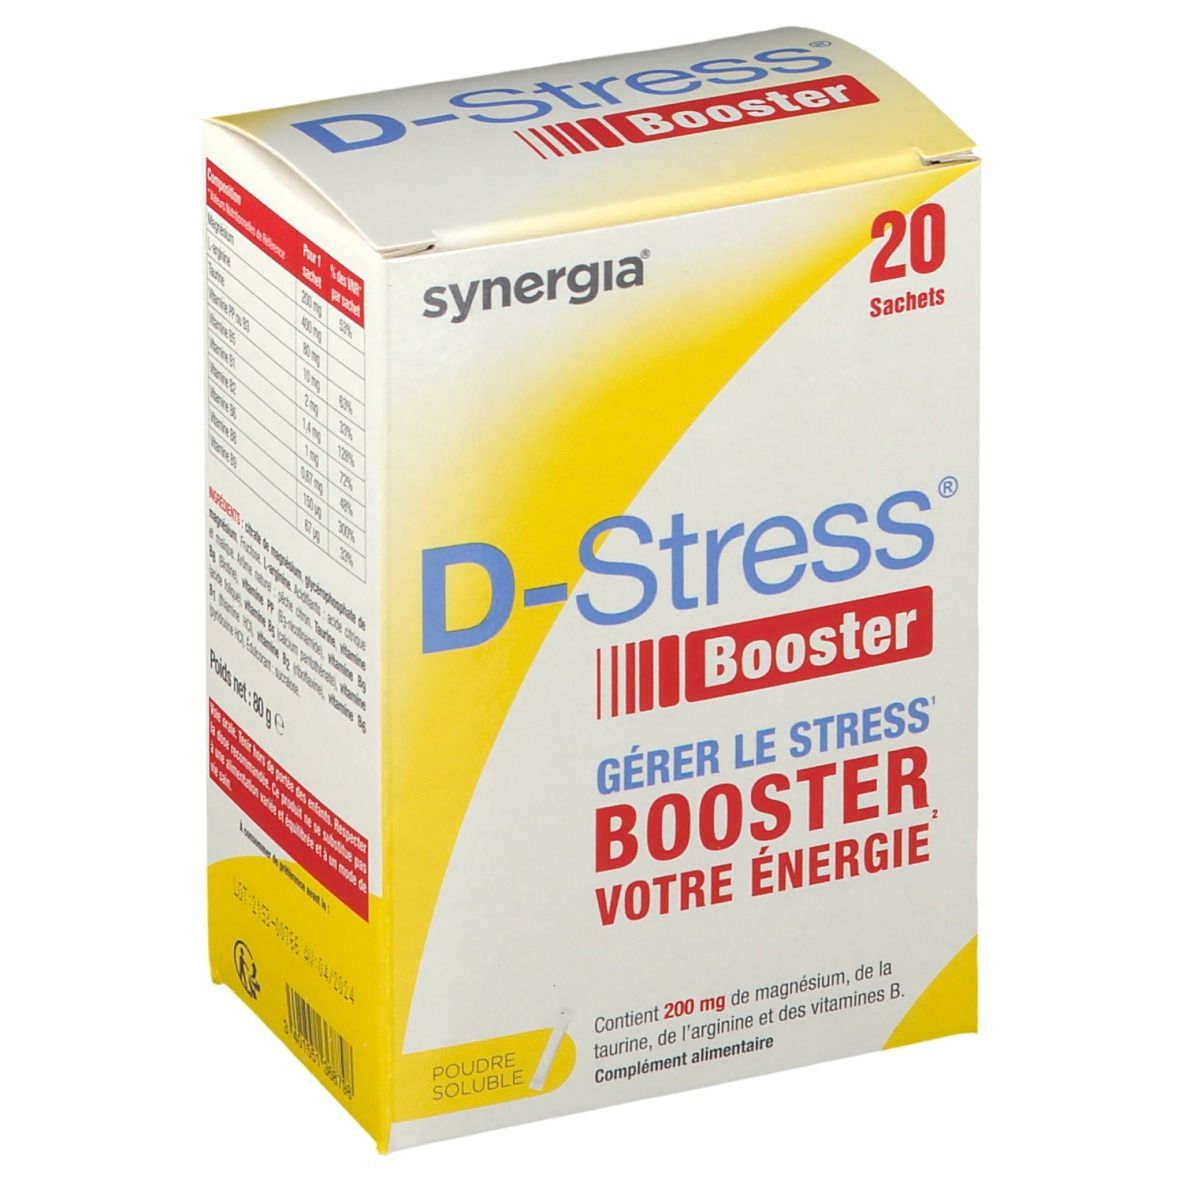 Synergia® D-Stress booster